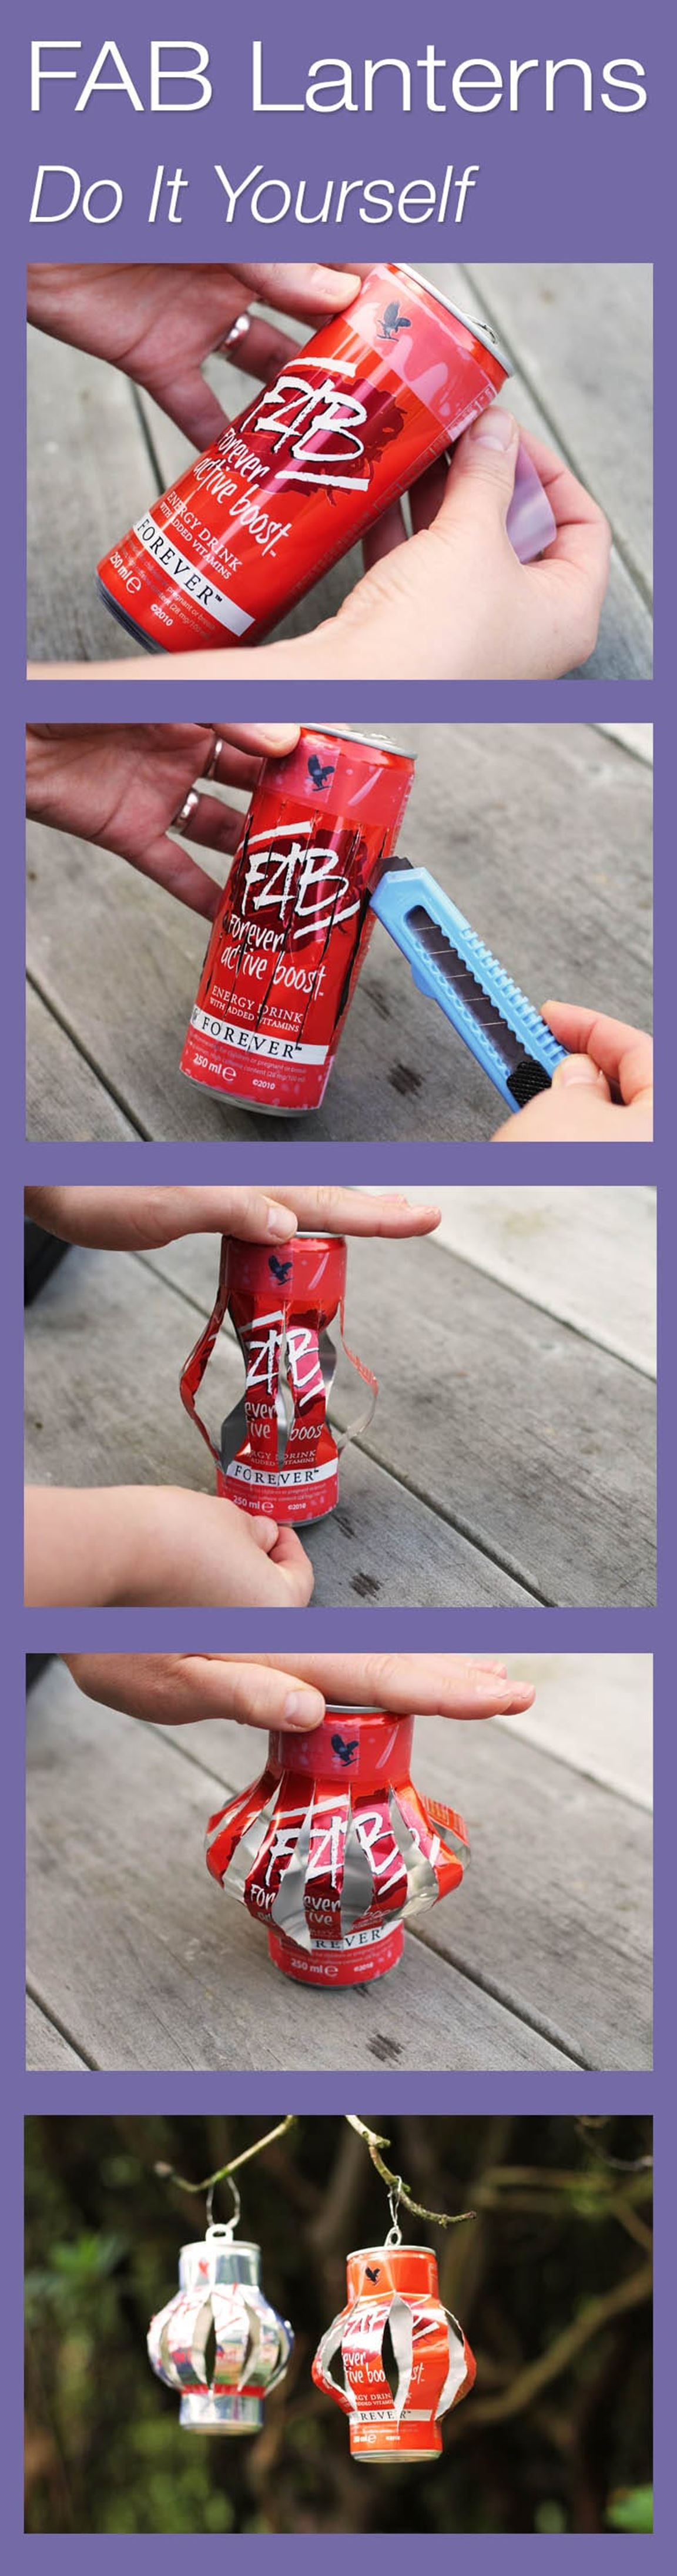 Make These FAB Ulous Lanterns Yourself! #DIY #Foreverliving #Crafts #Cans #Repurpose #Summer #Fun #Energydrink